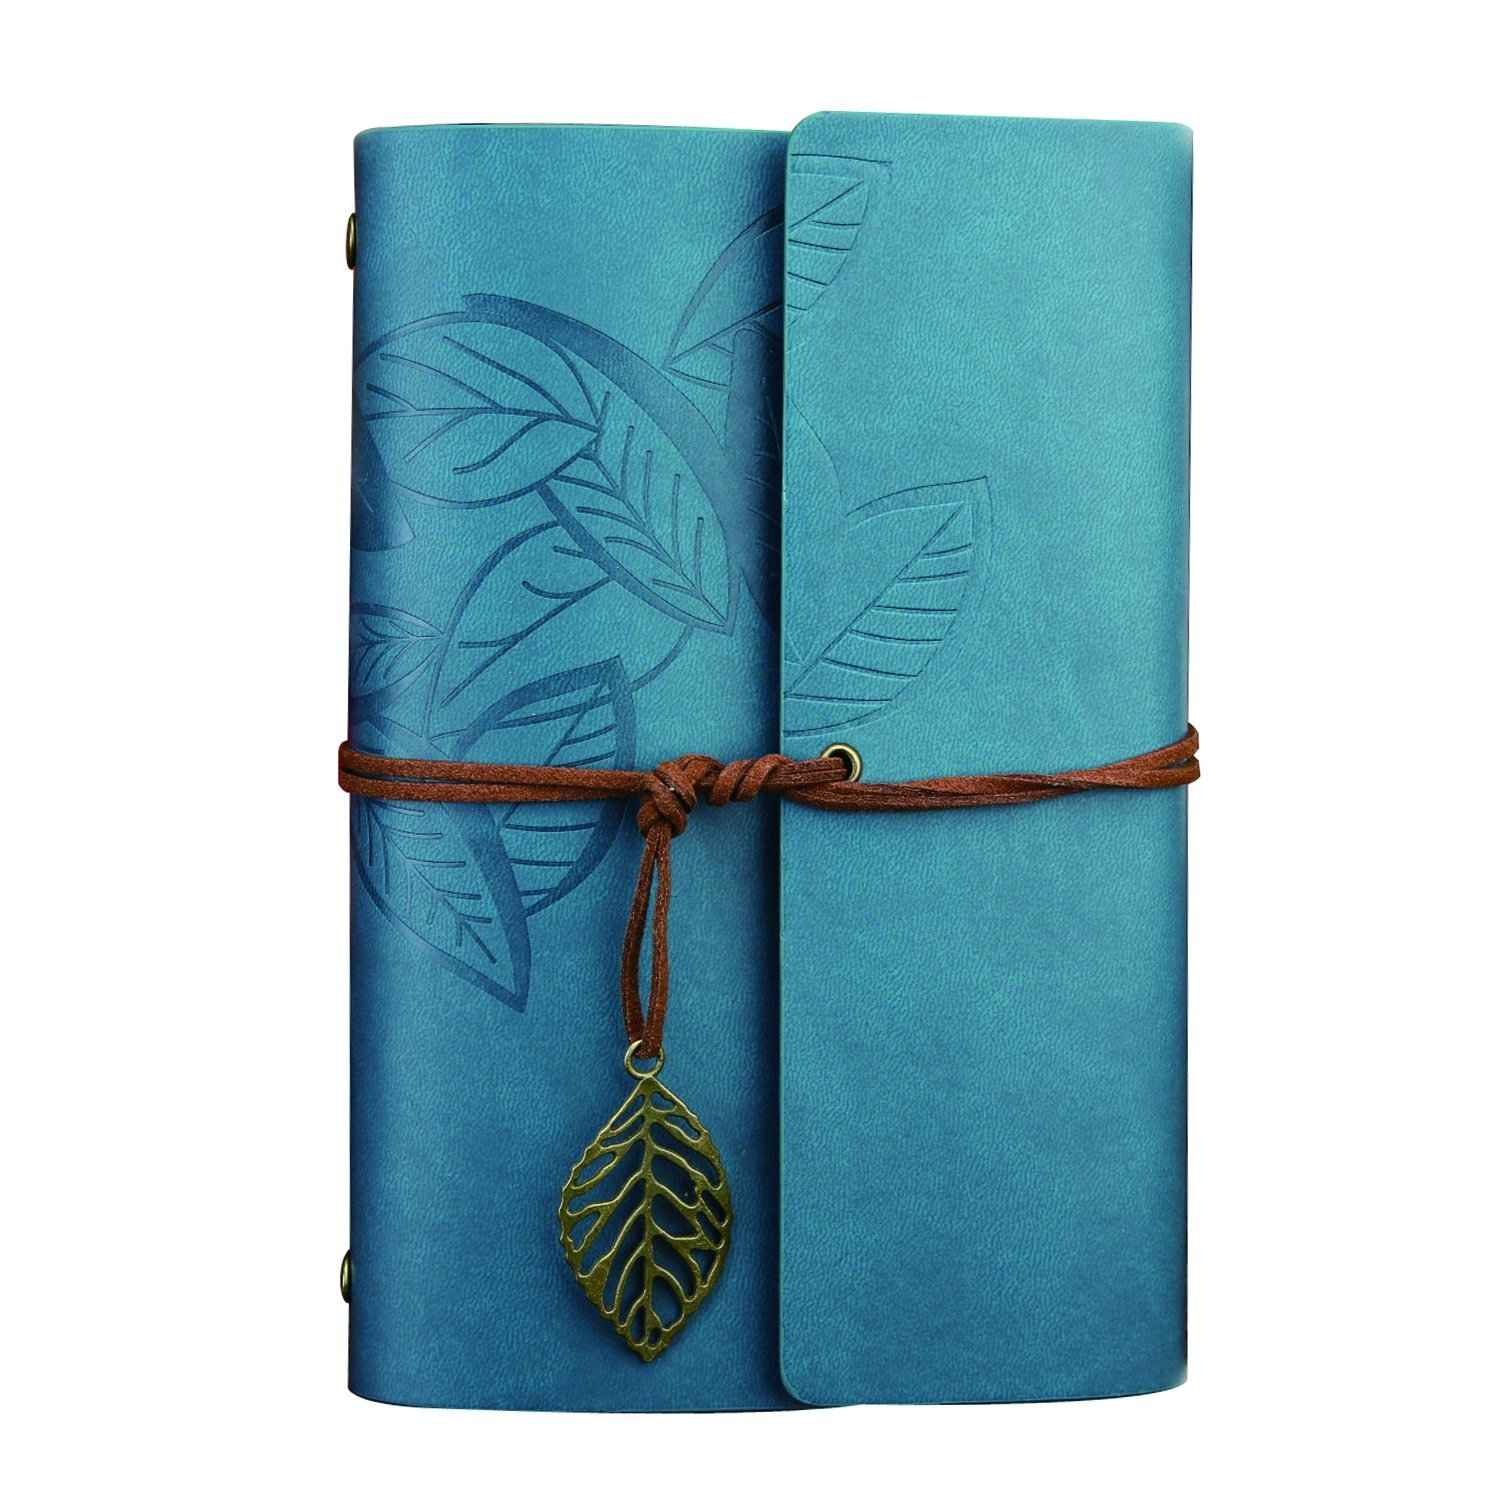 Ai-life Vintage Retro Leaf Pattern PU Leather Cover Notebook Writing Journal Diary, Vintage Spiral Blank Daily Notepad, Unlined Paper, Retro Pendants, Classic Embossed, Loose Leaf